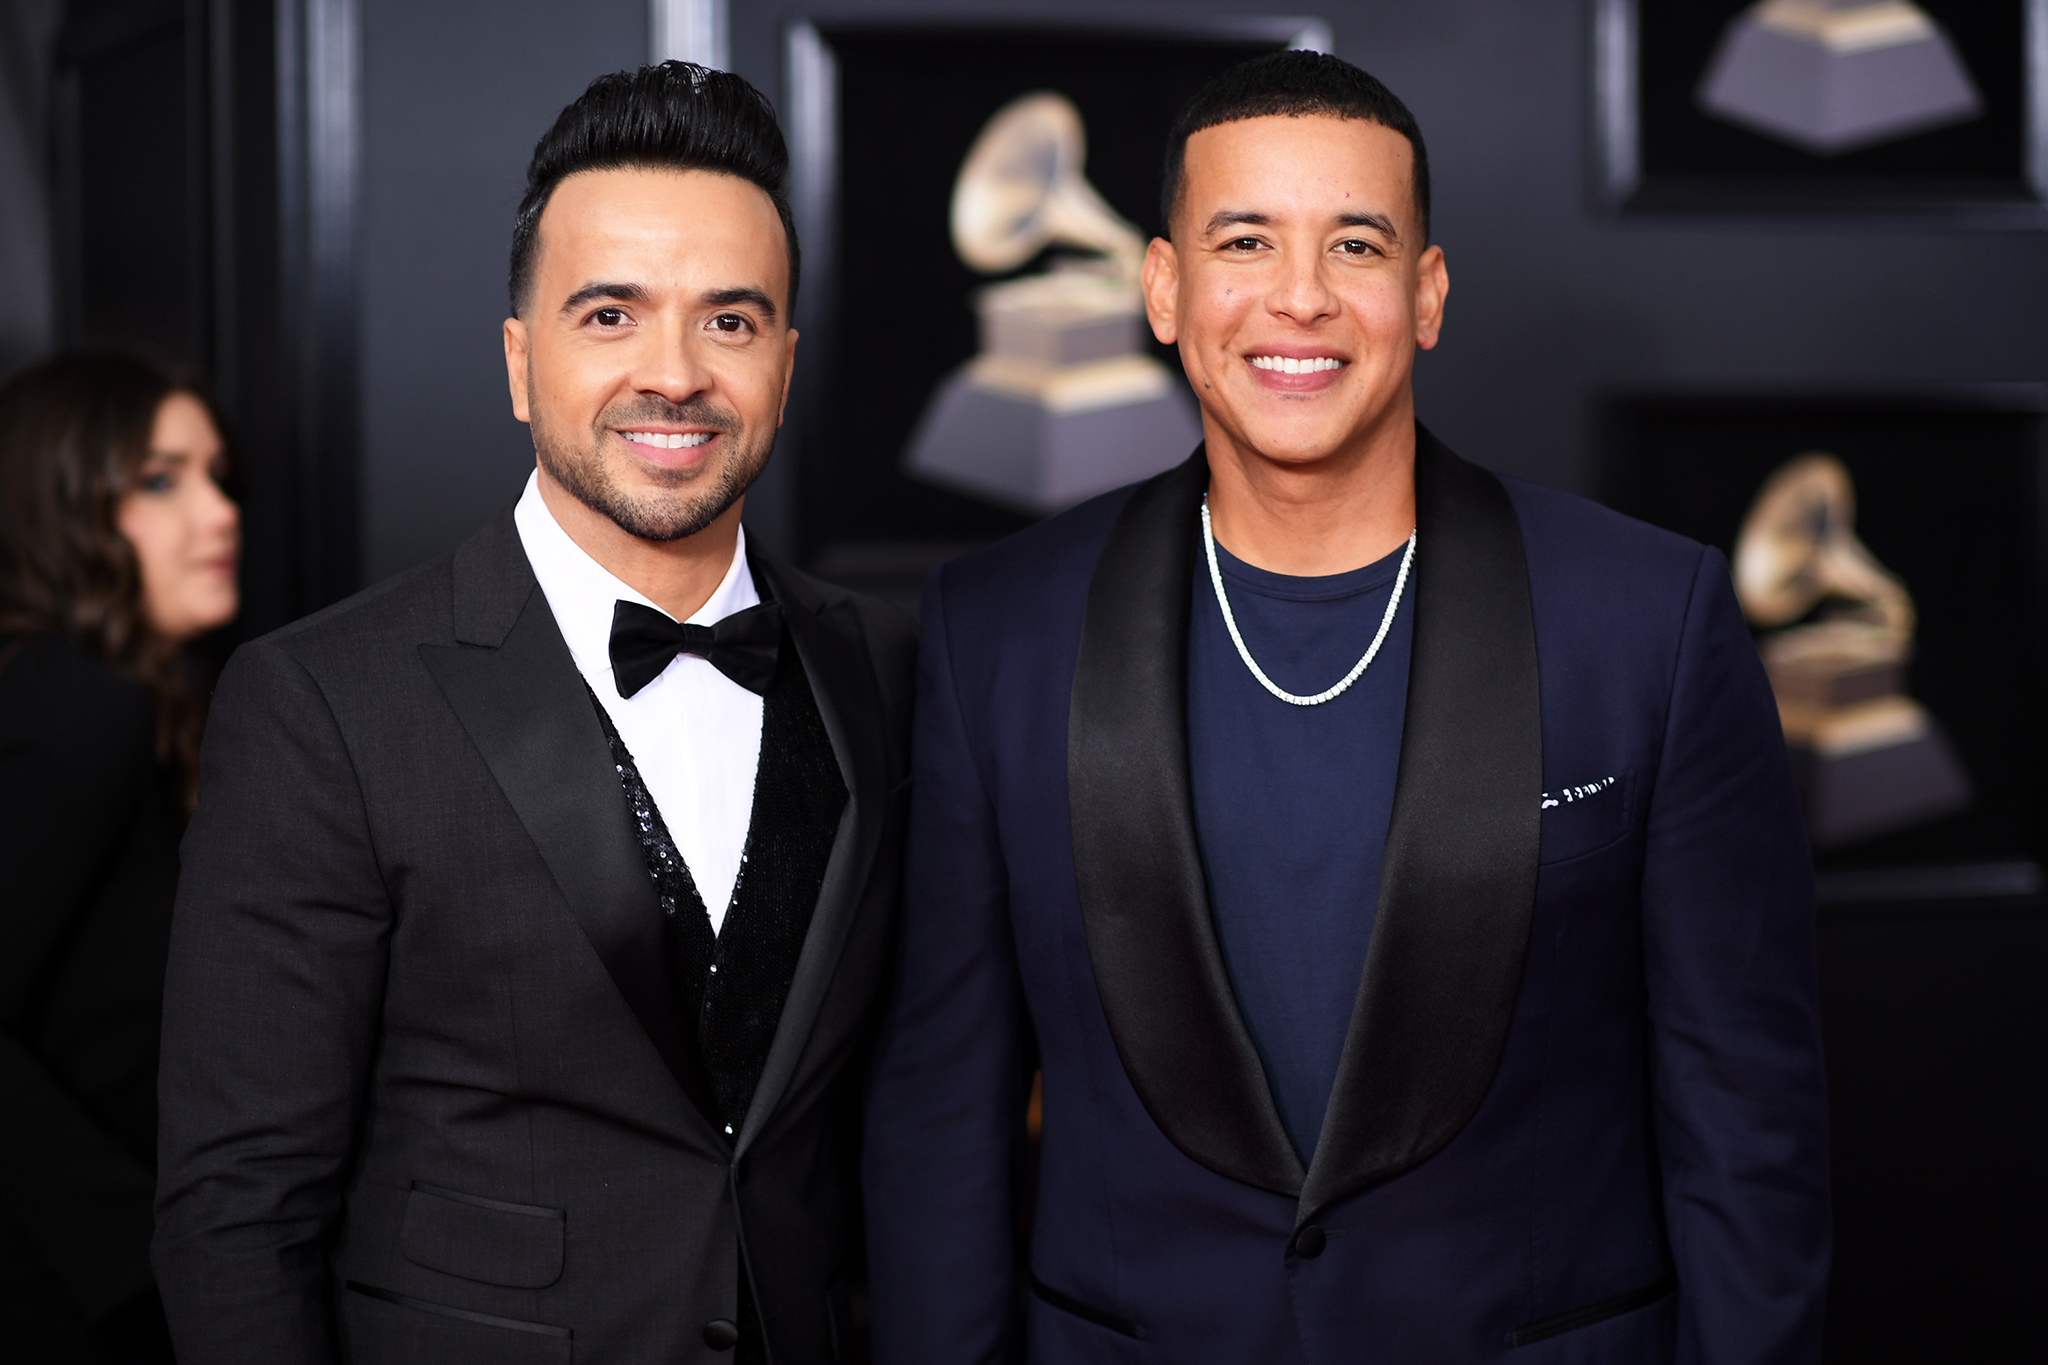 Recording artists Luis Fonsi and Daddy Yankee attend the 60th Annual GRAMMY Awards at Madison Square Garden on January 28, 2018 in New York City.